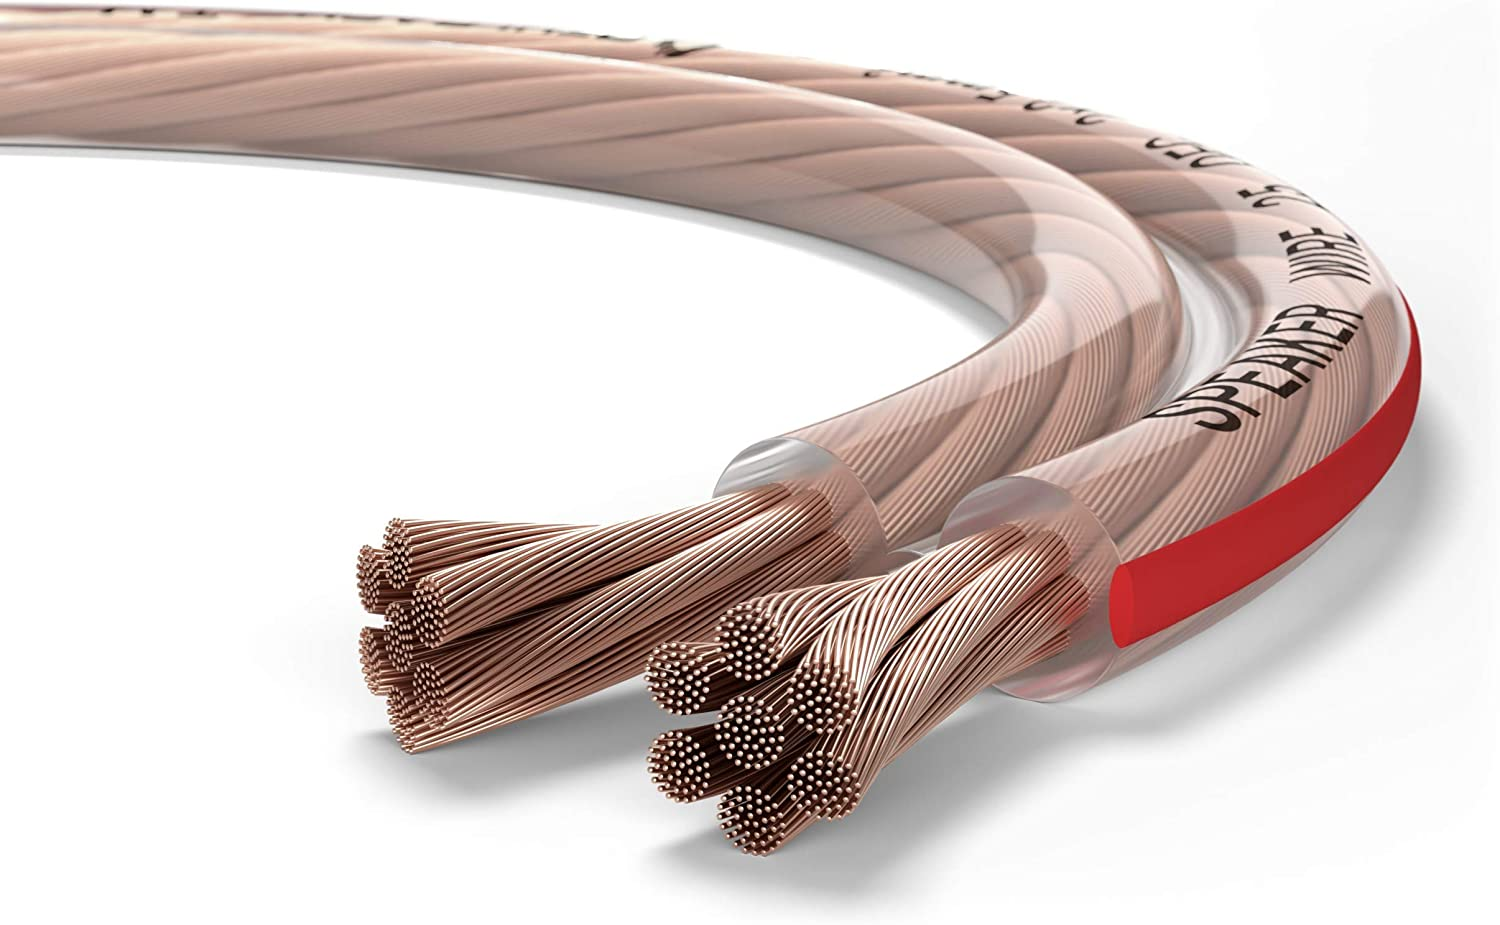 10m spool OEHLBACH Speaker Cable 2x2,50mm/² For systems upto 120W Star Rateing : 3.